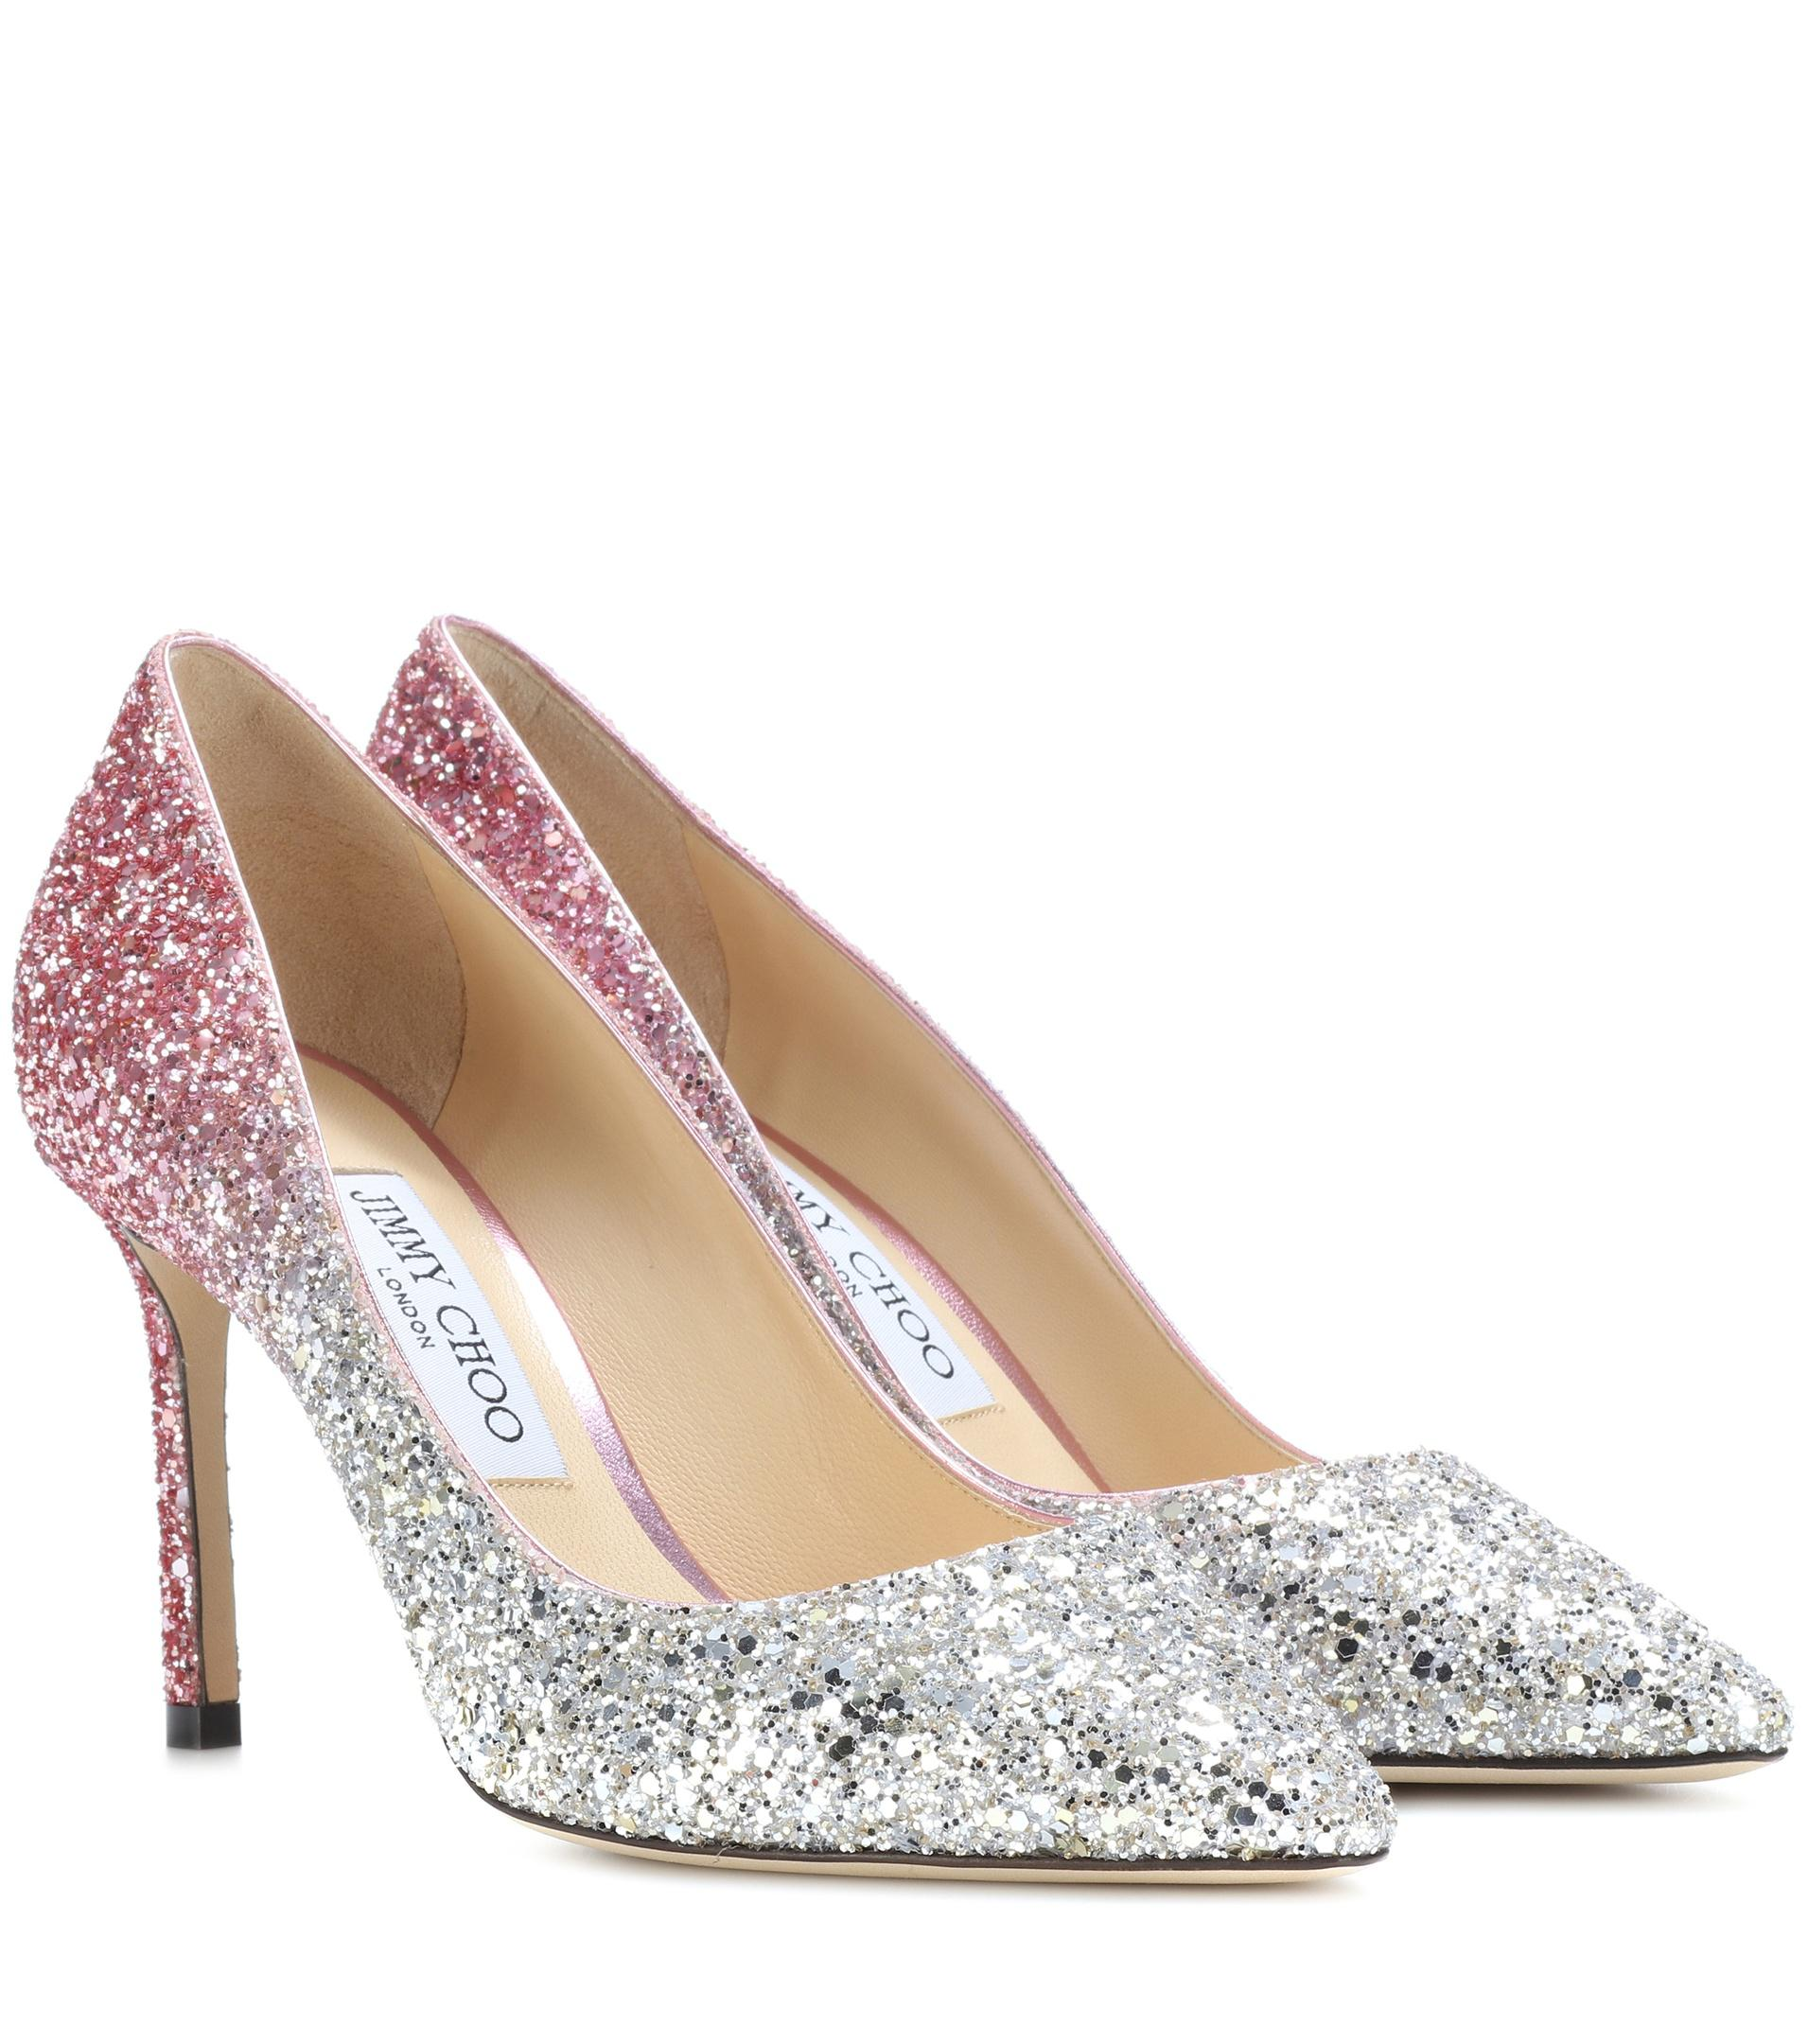 Exclusive to mytheresa.com - Romy 85 glitter pumps Jimmy Choo London Discount Authentic Buy Cheap Top Quality Cheap Price Free Shipping Outlet For Nice Pre Order Cheap Online z2igHJ8